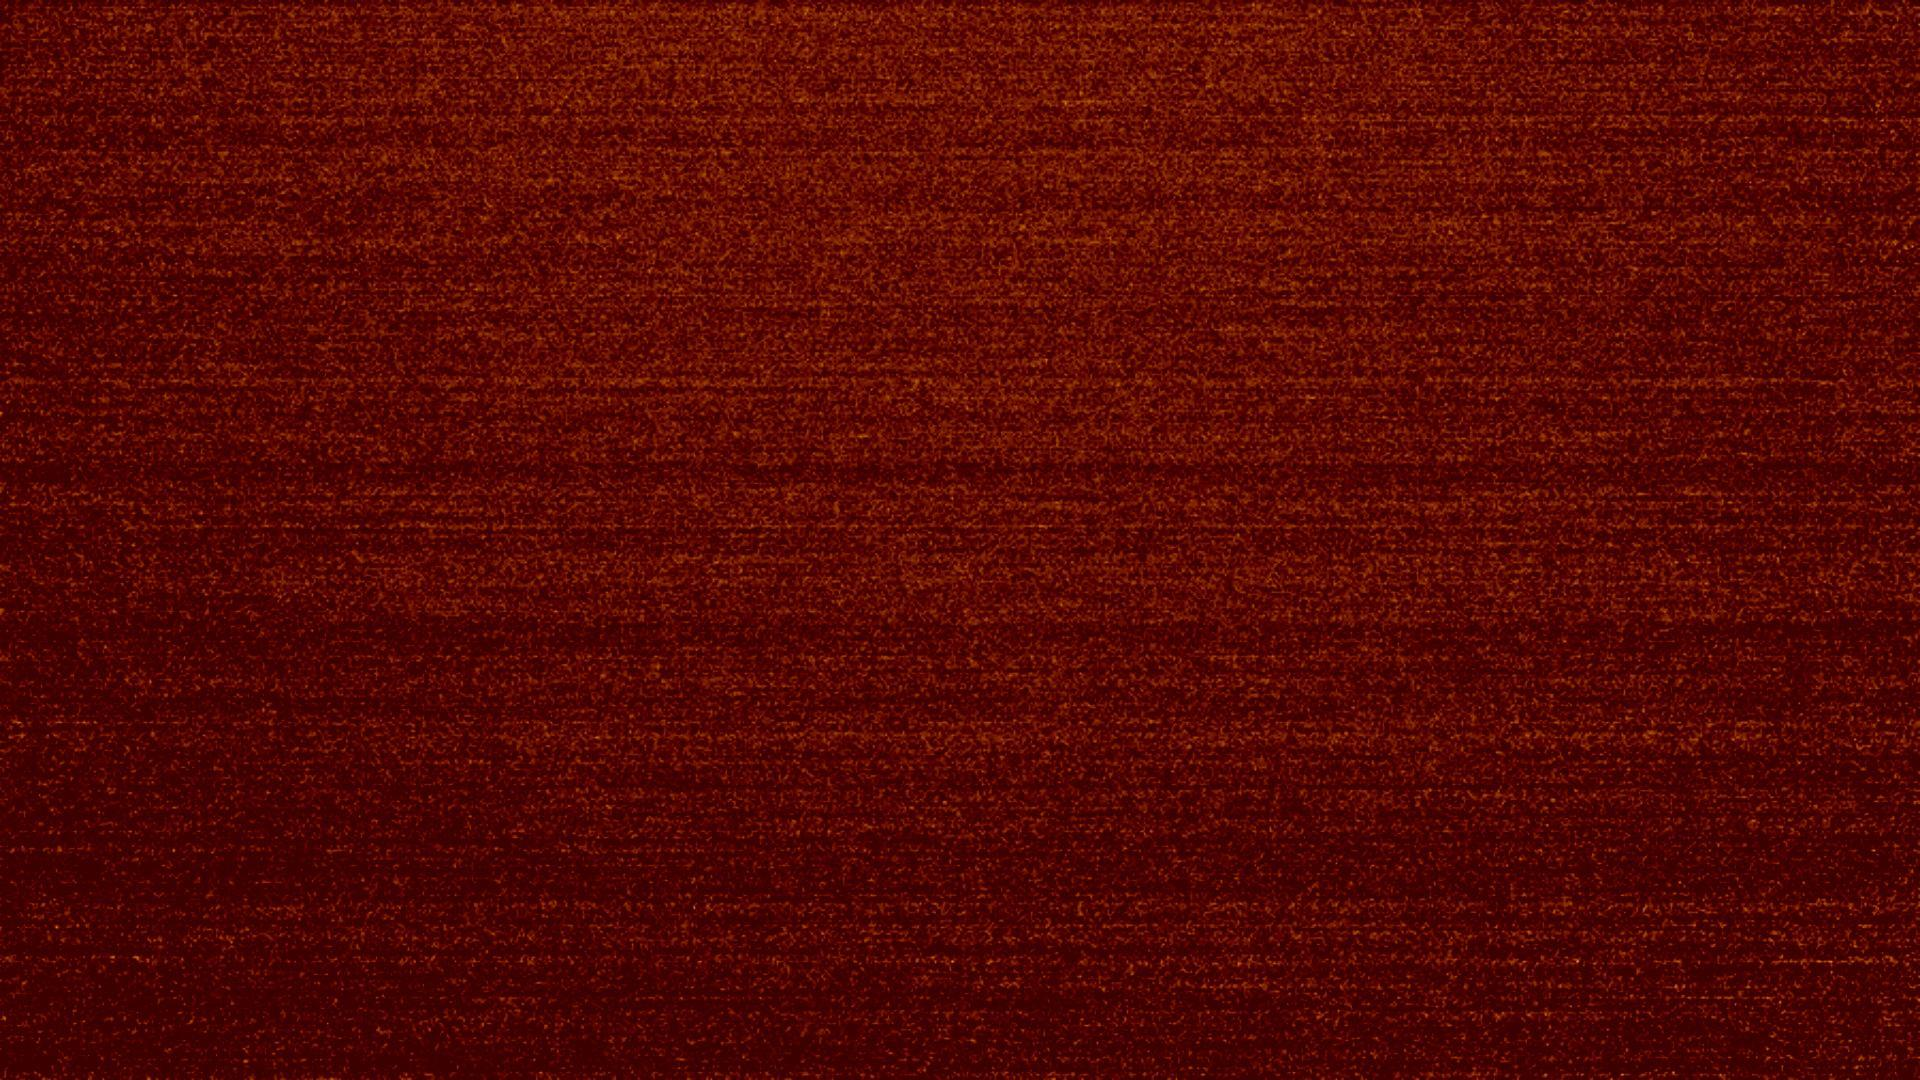 Maroon Colour Background Magdalene Project Org